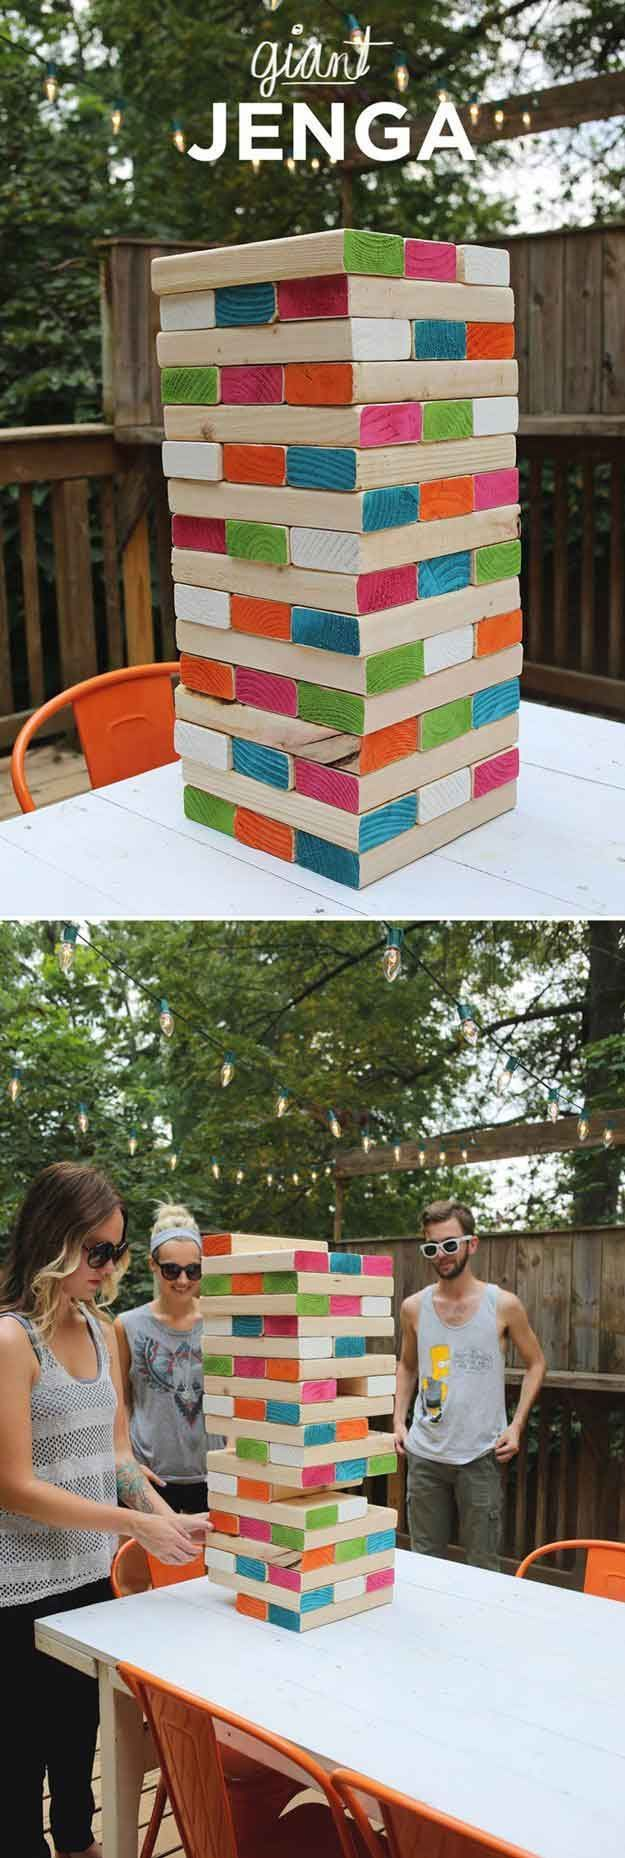 Giant Jenga | 15 DIY Outdoor Family Games